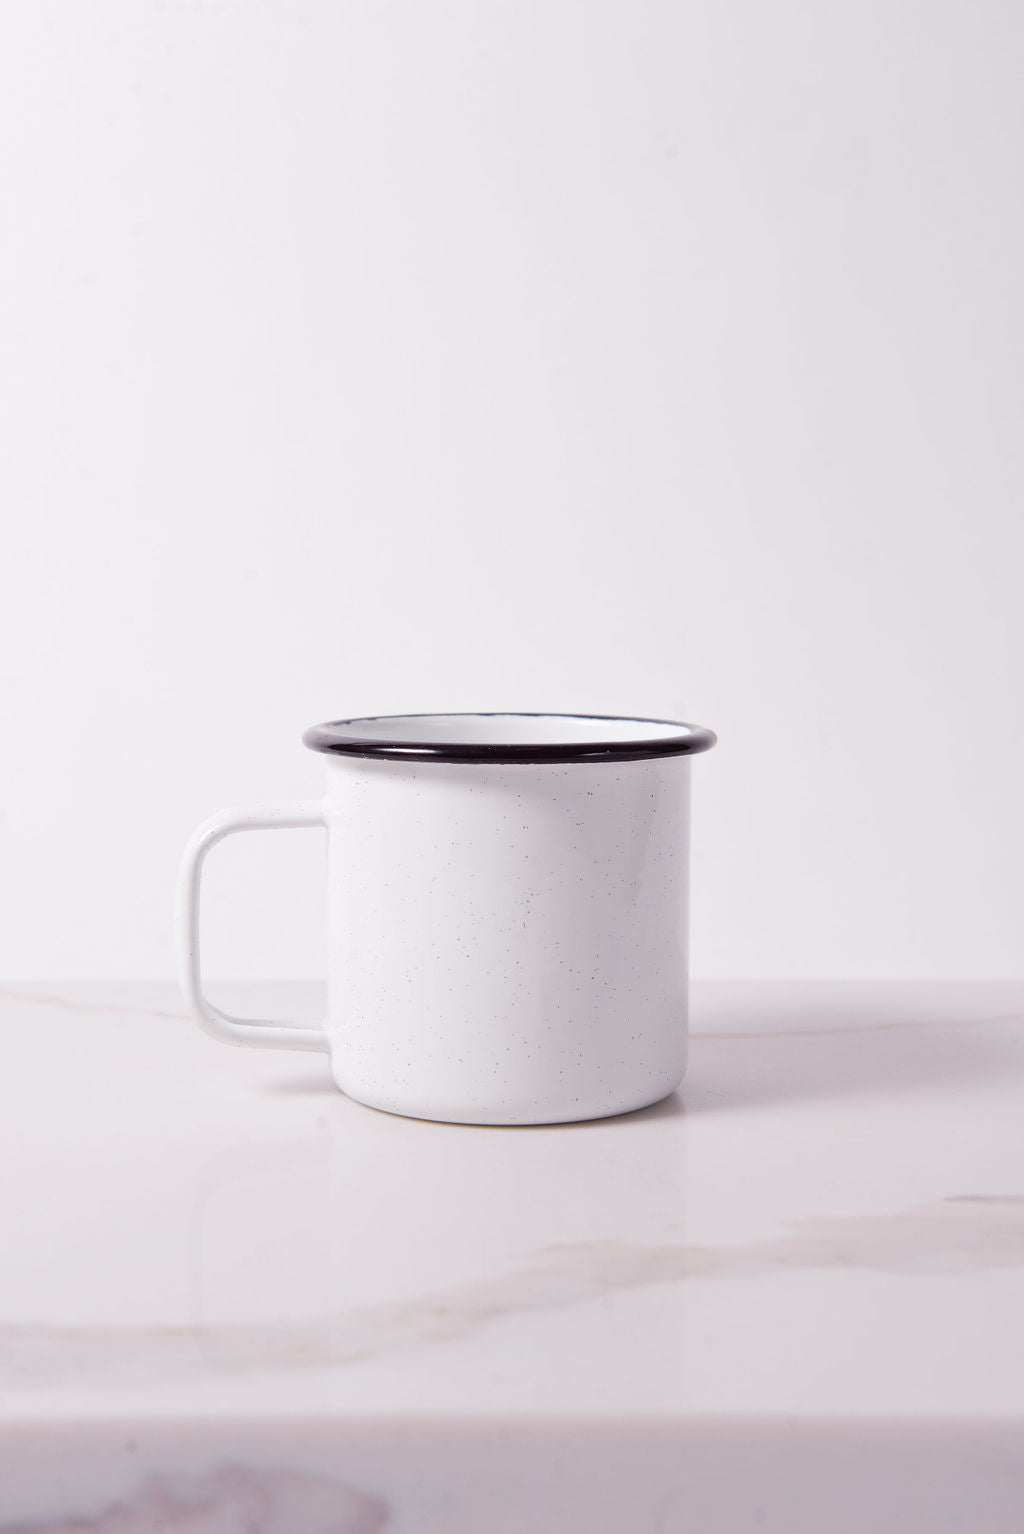 CUSTOM DESIGN - 16oz Enamel Camping Mug